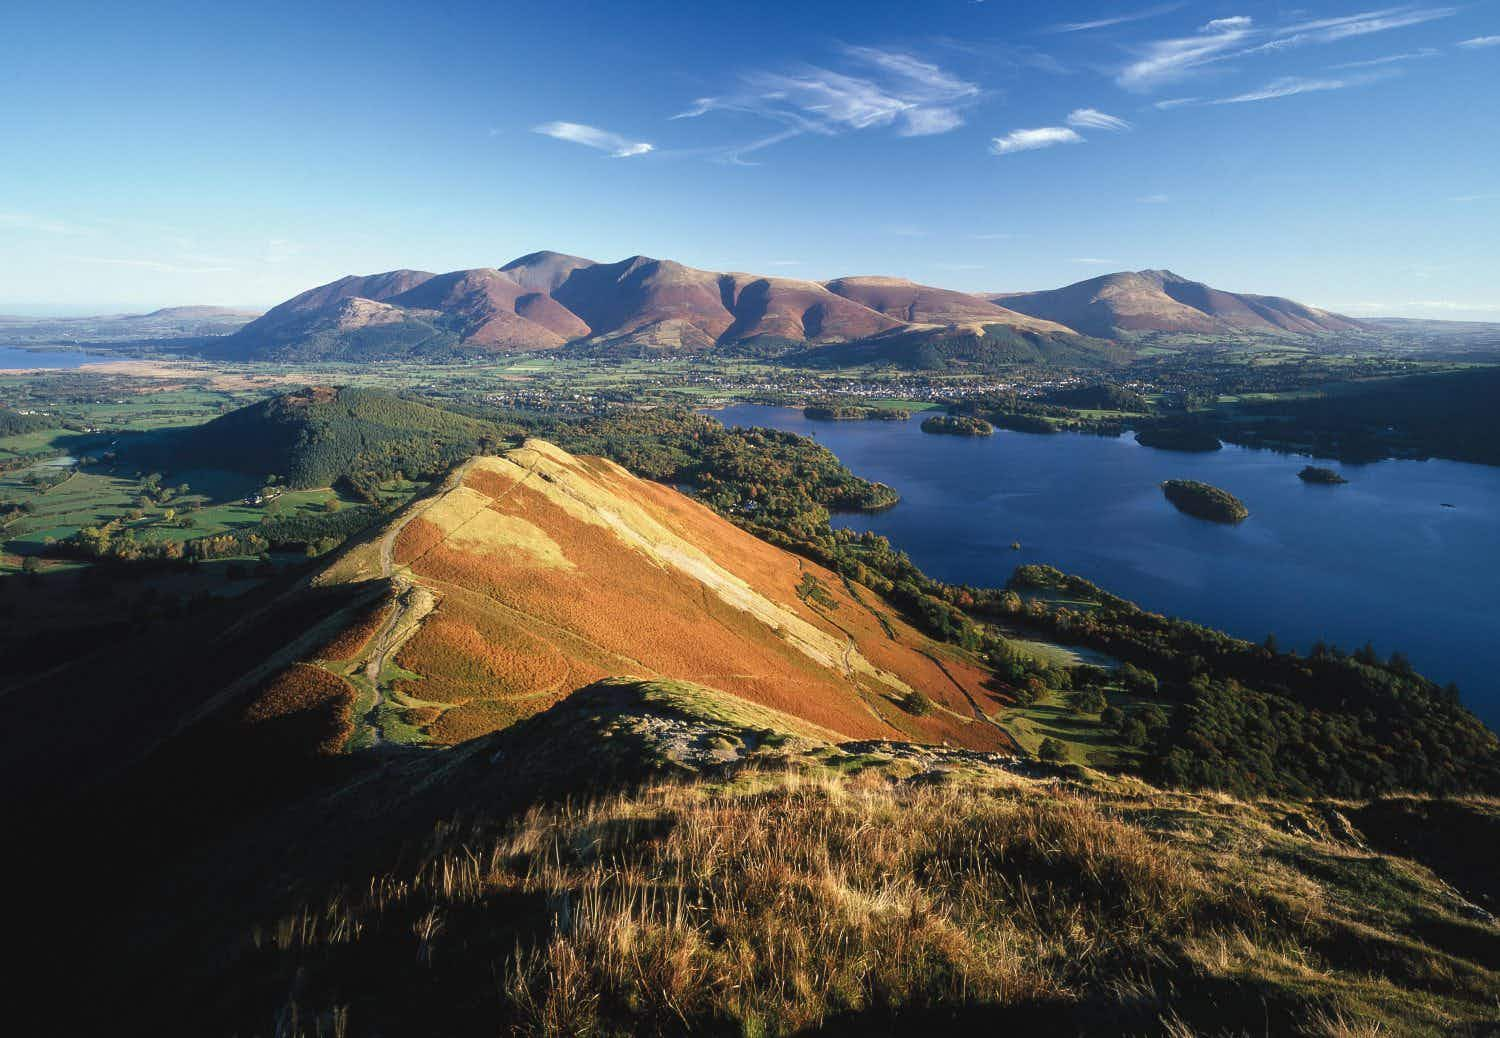 You will be packing for England's Lake District after seeing these breathtaking photos